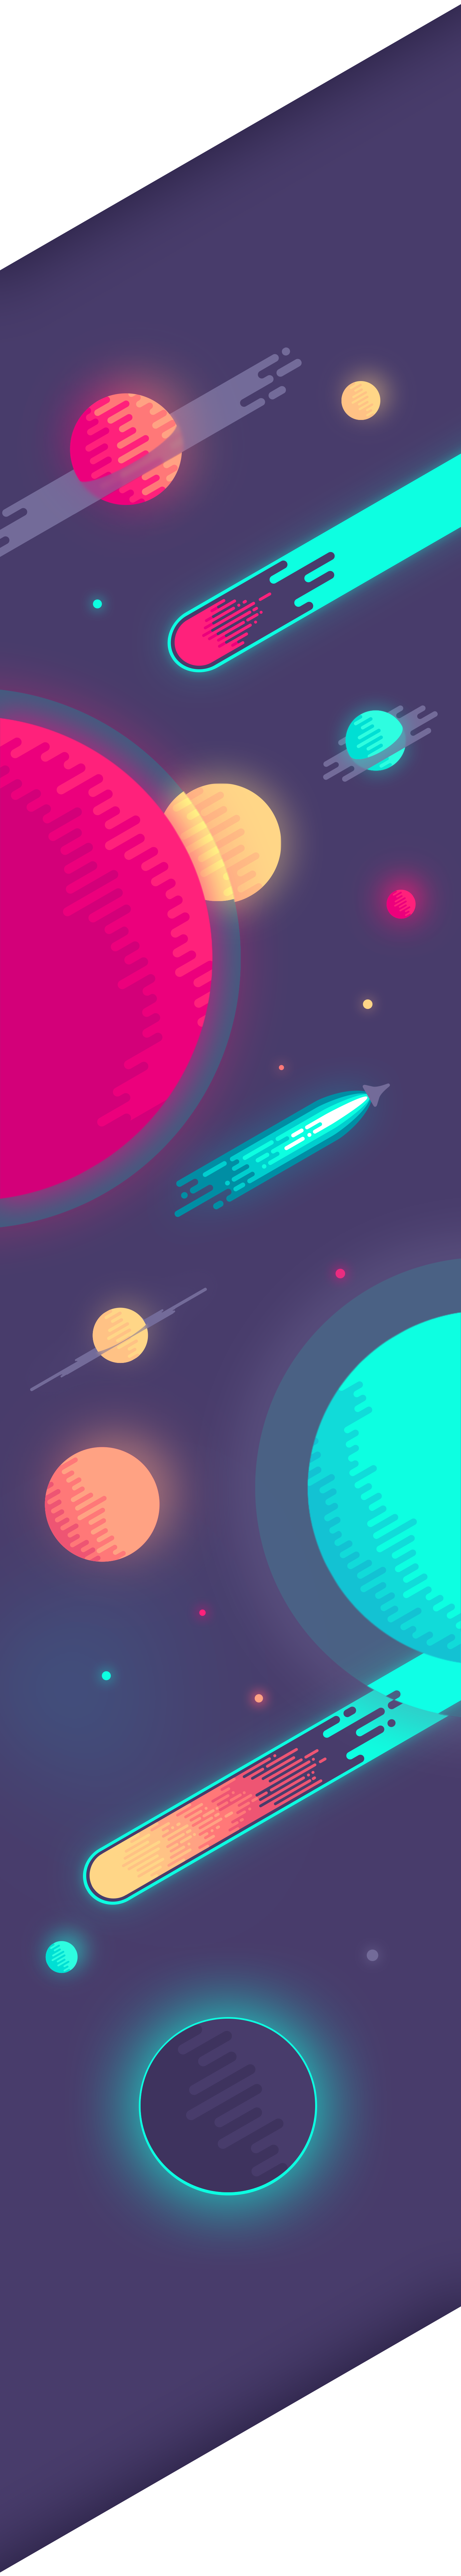 poster Space  sci-fi meteor Planets geometric print wallpaper free download background universe